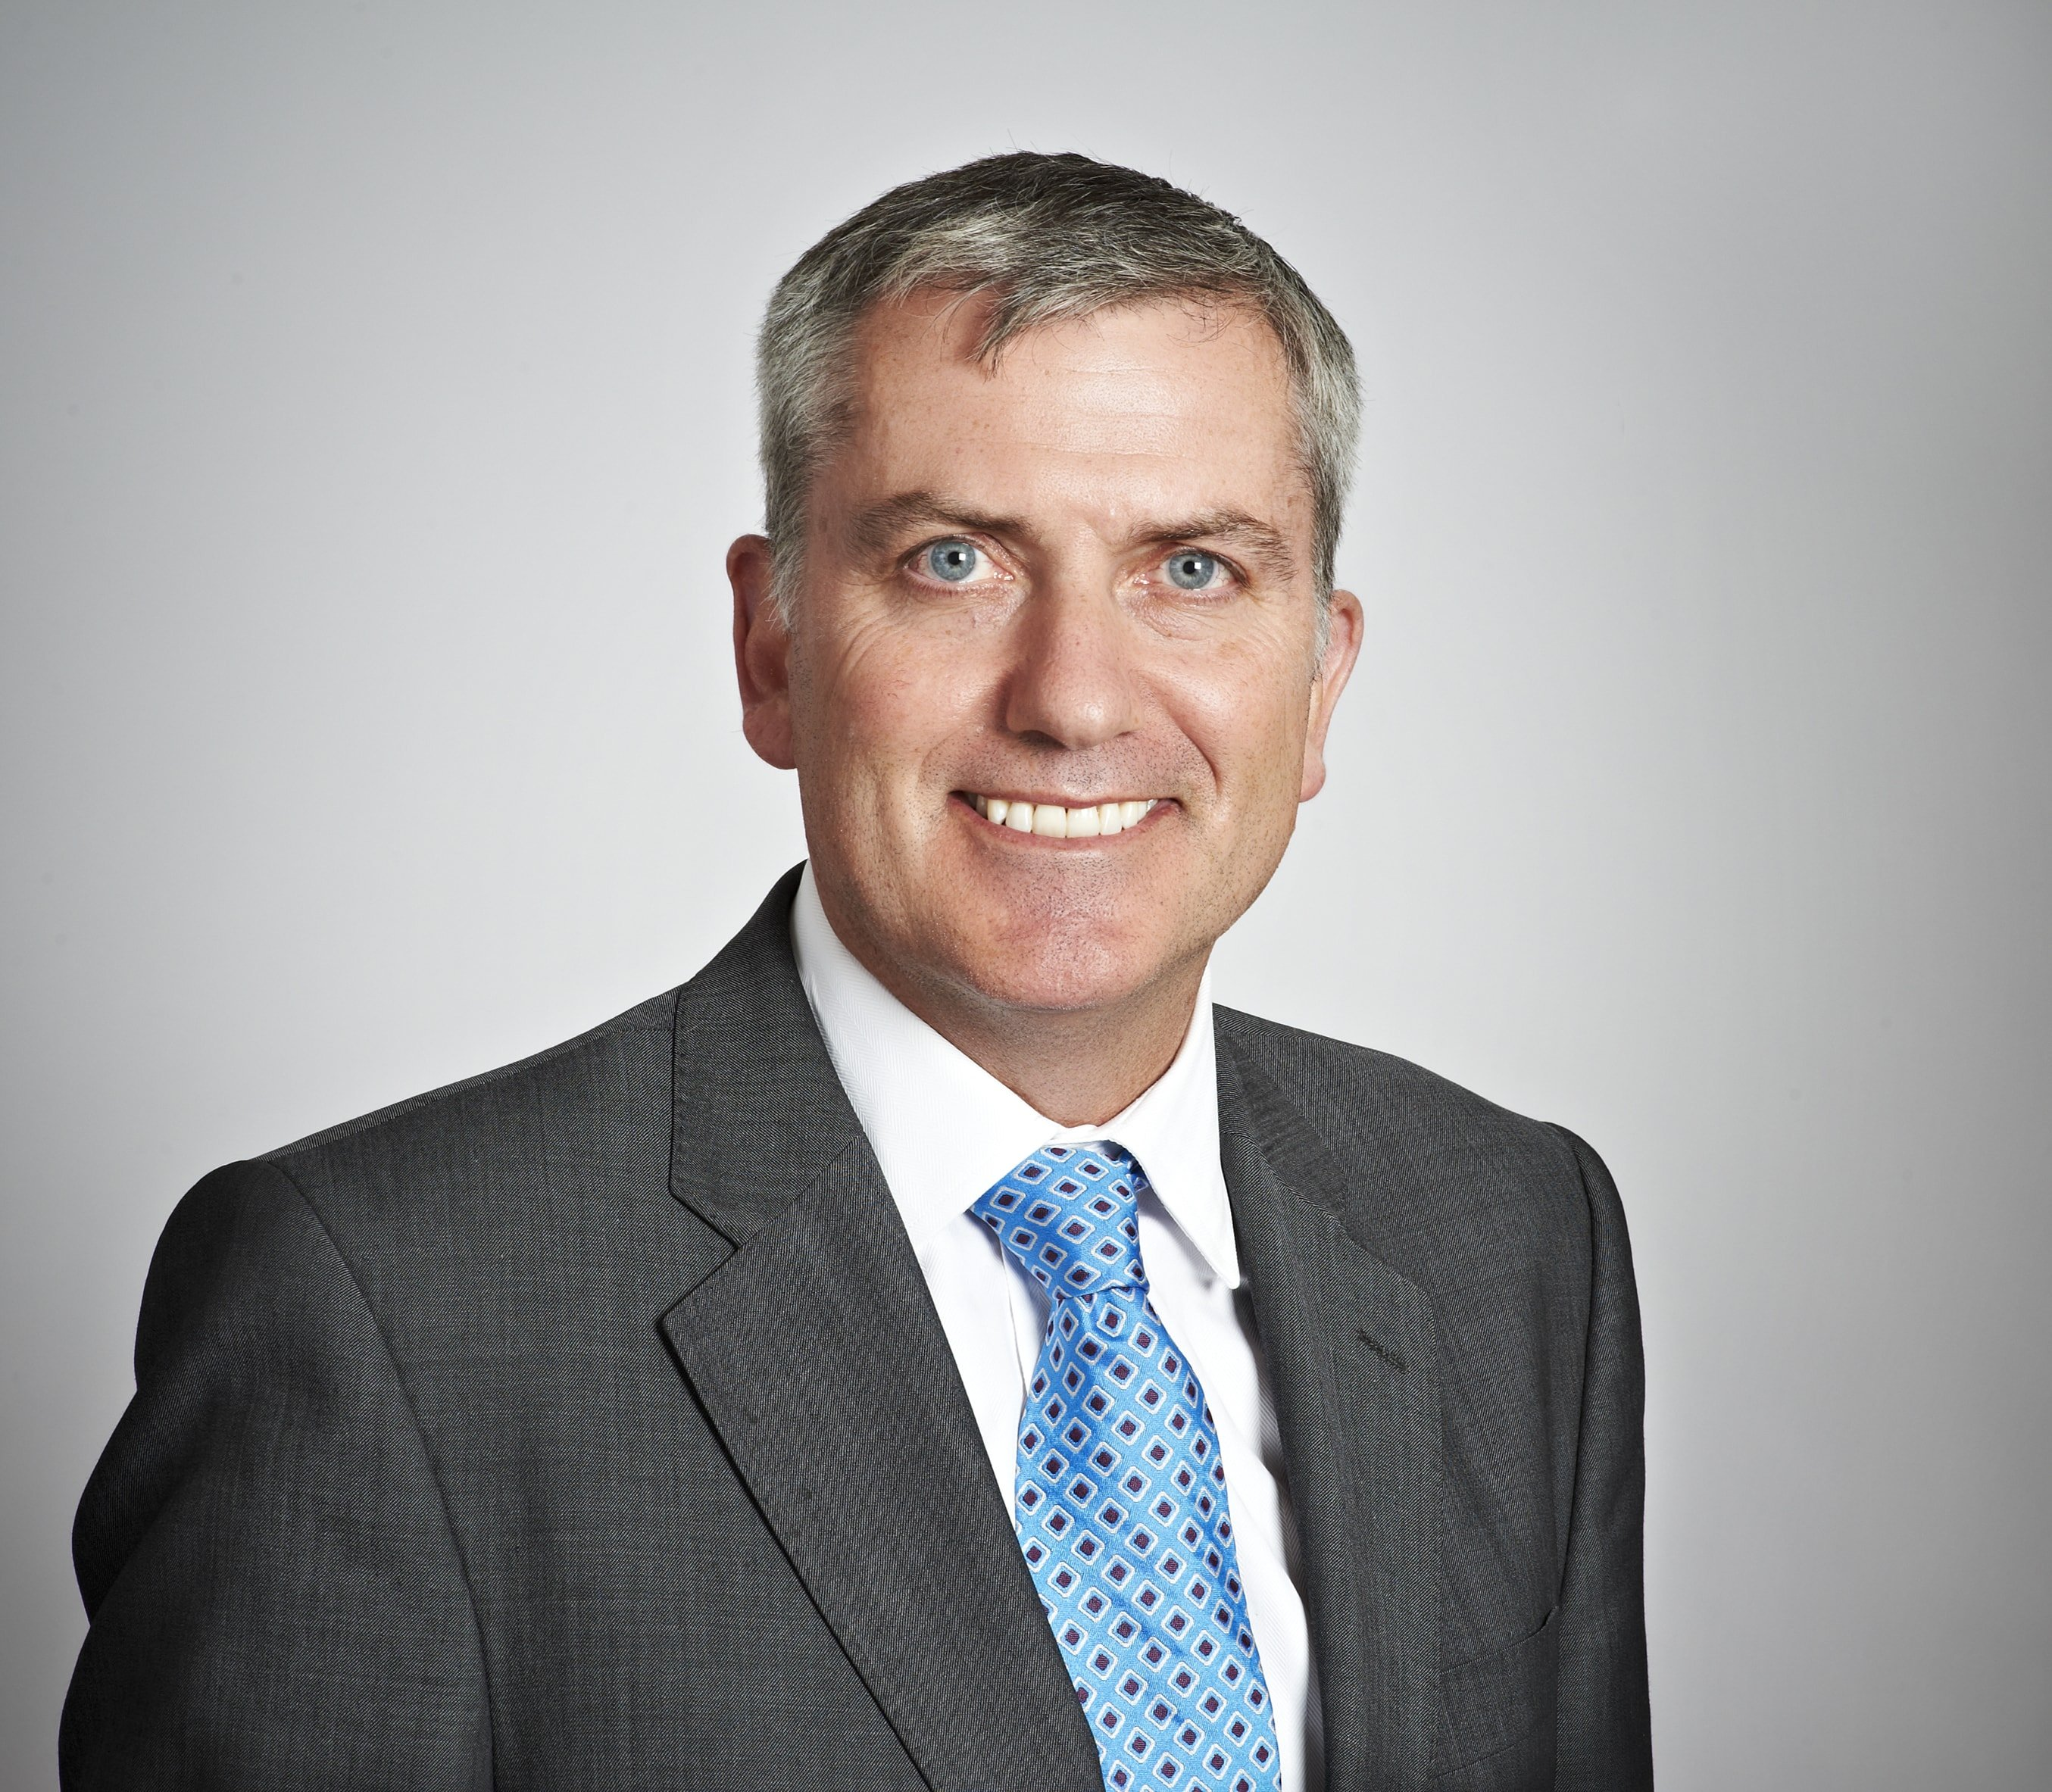 Justin O'Connor is CEO at Savills Investment Management (UK) Ltd